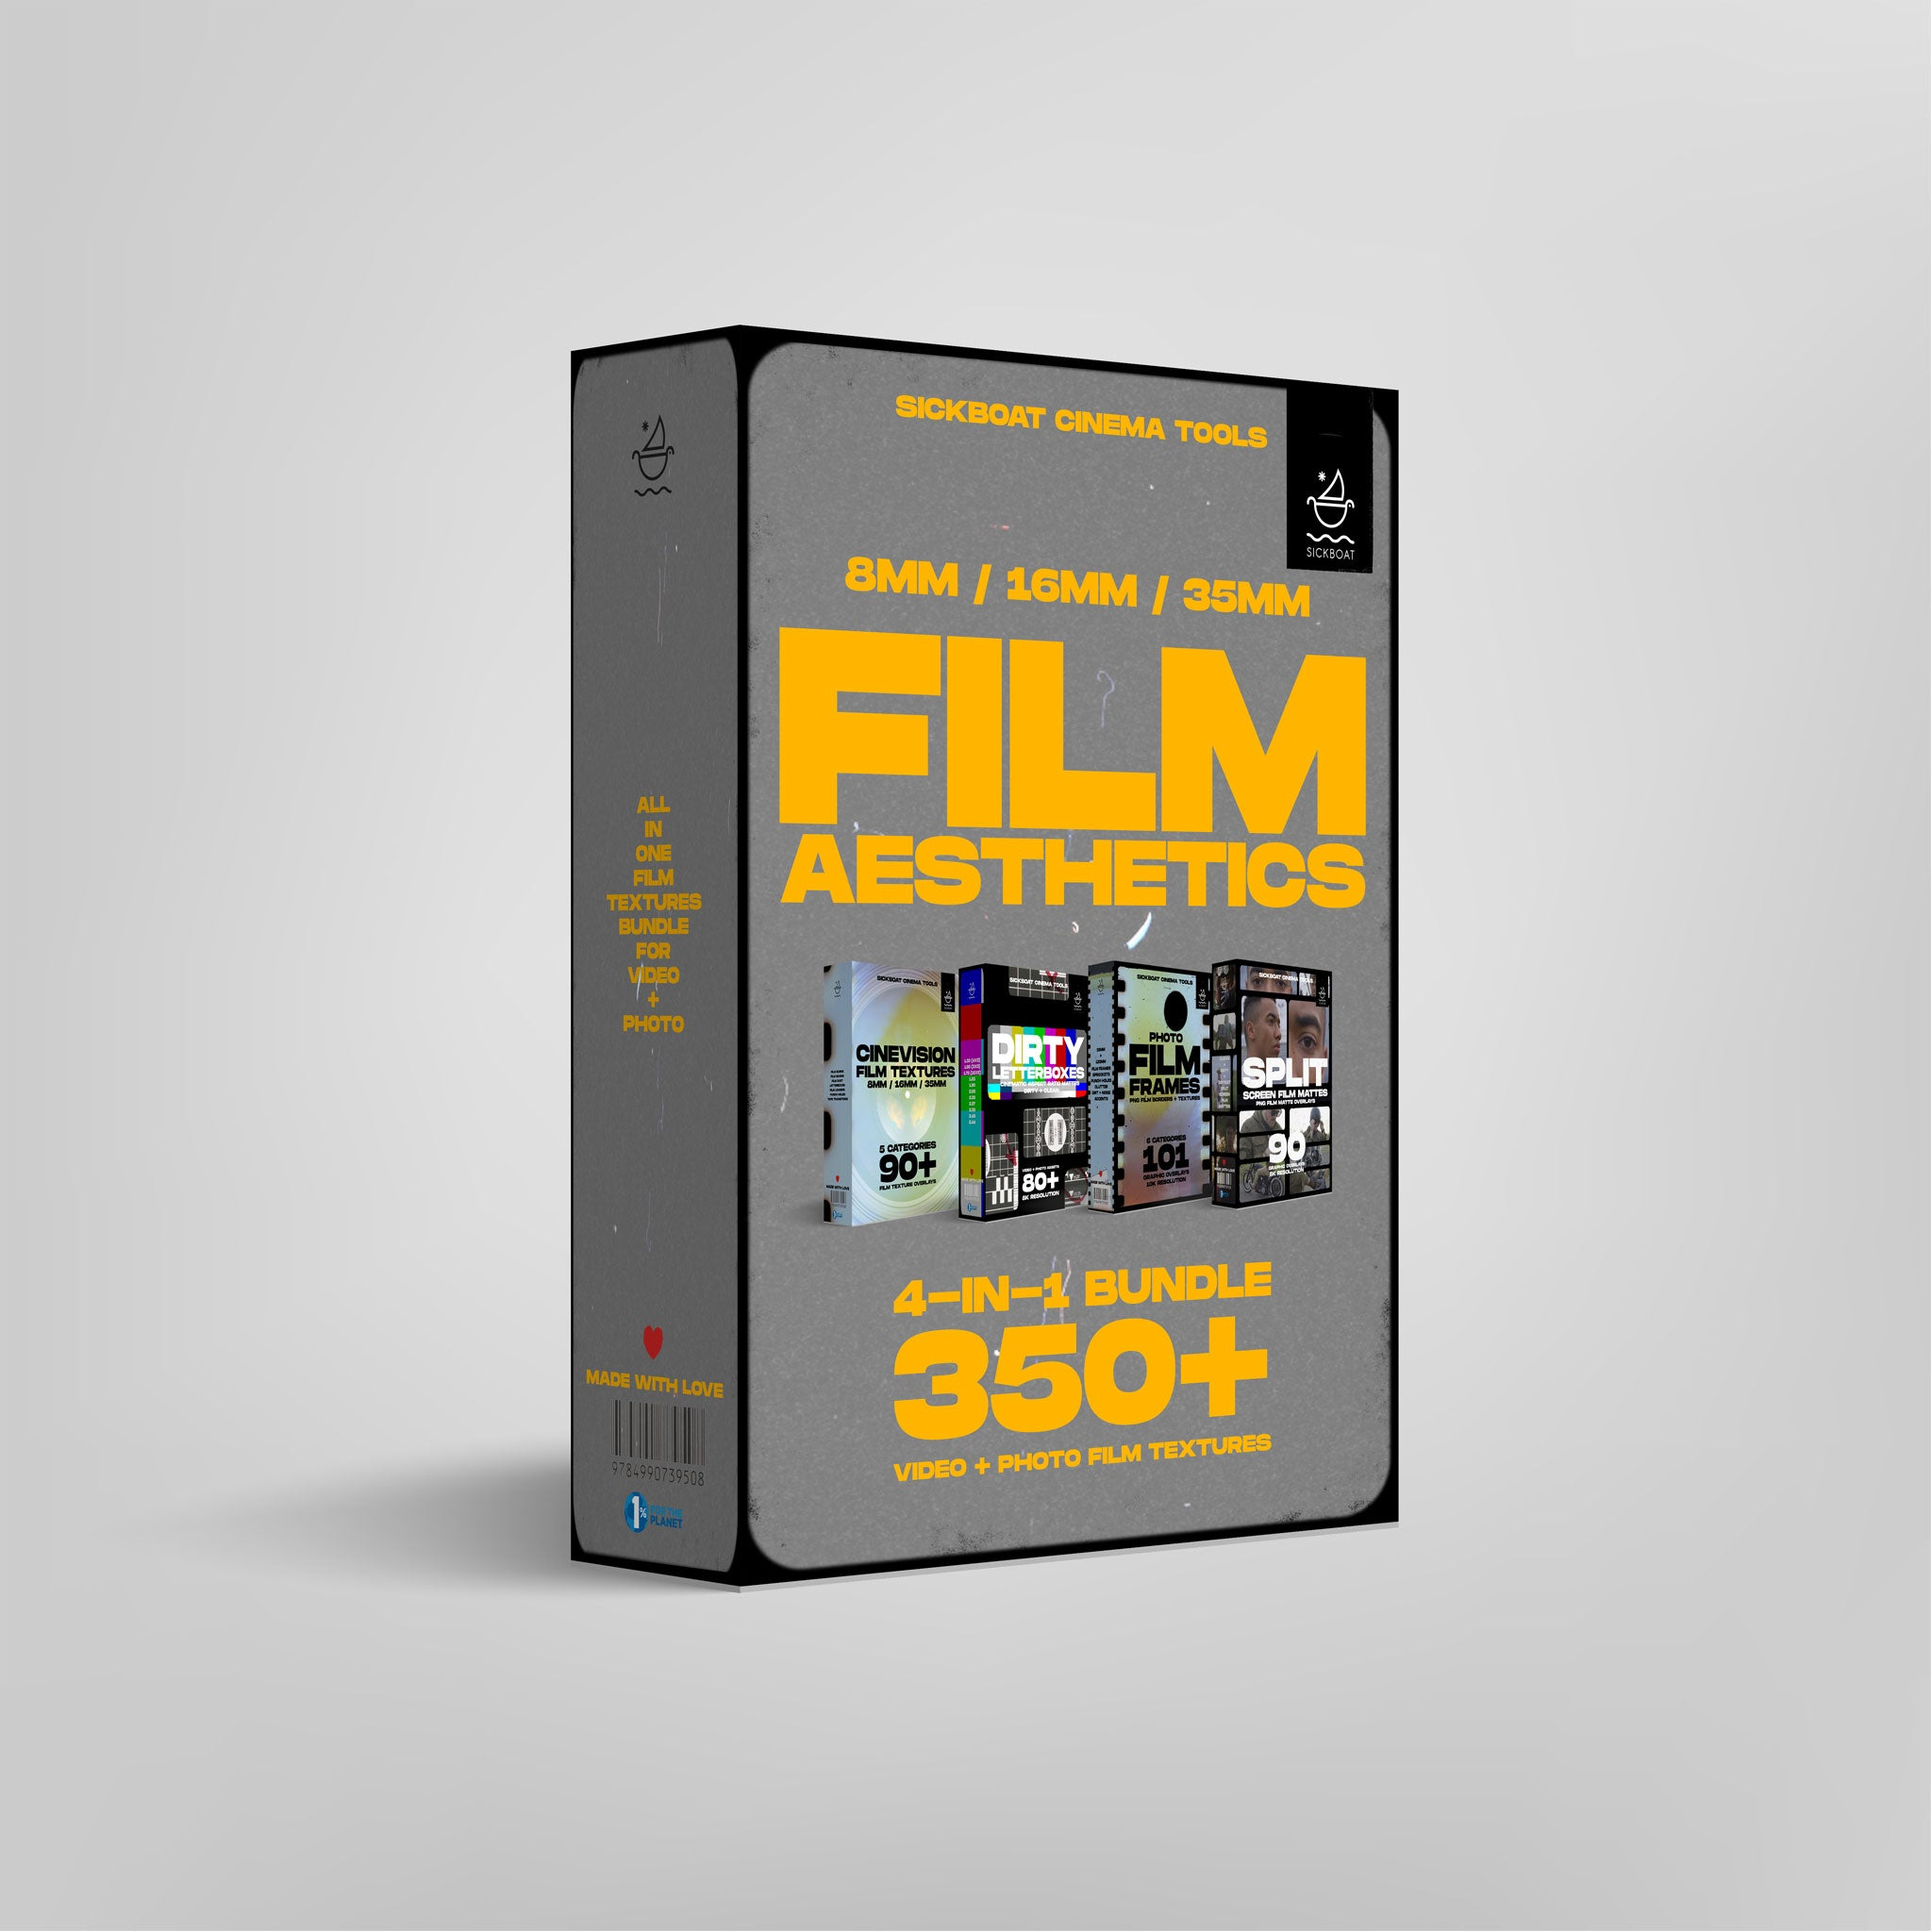 film aesthetics the ultimate film texture for video and photo